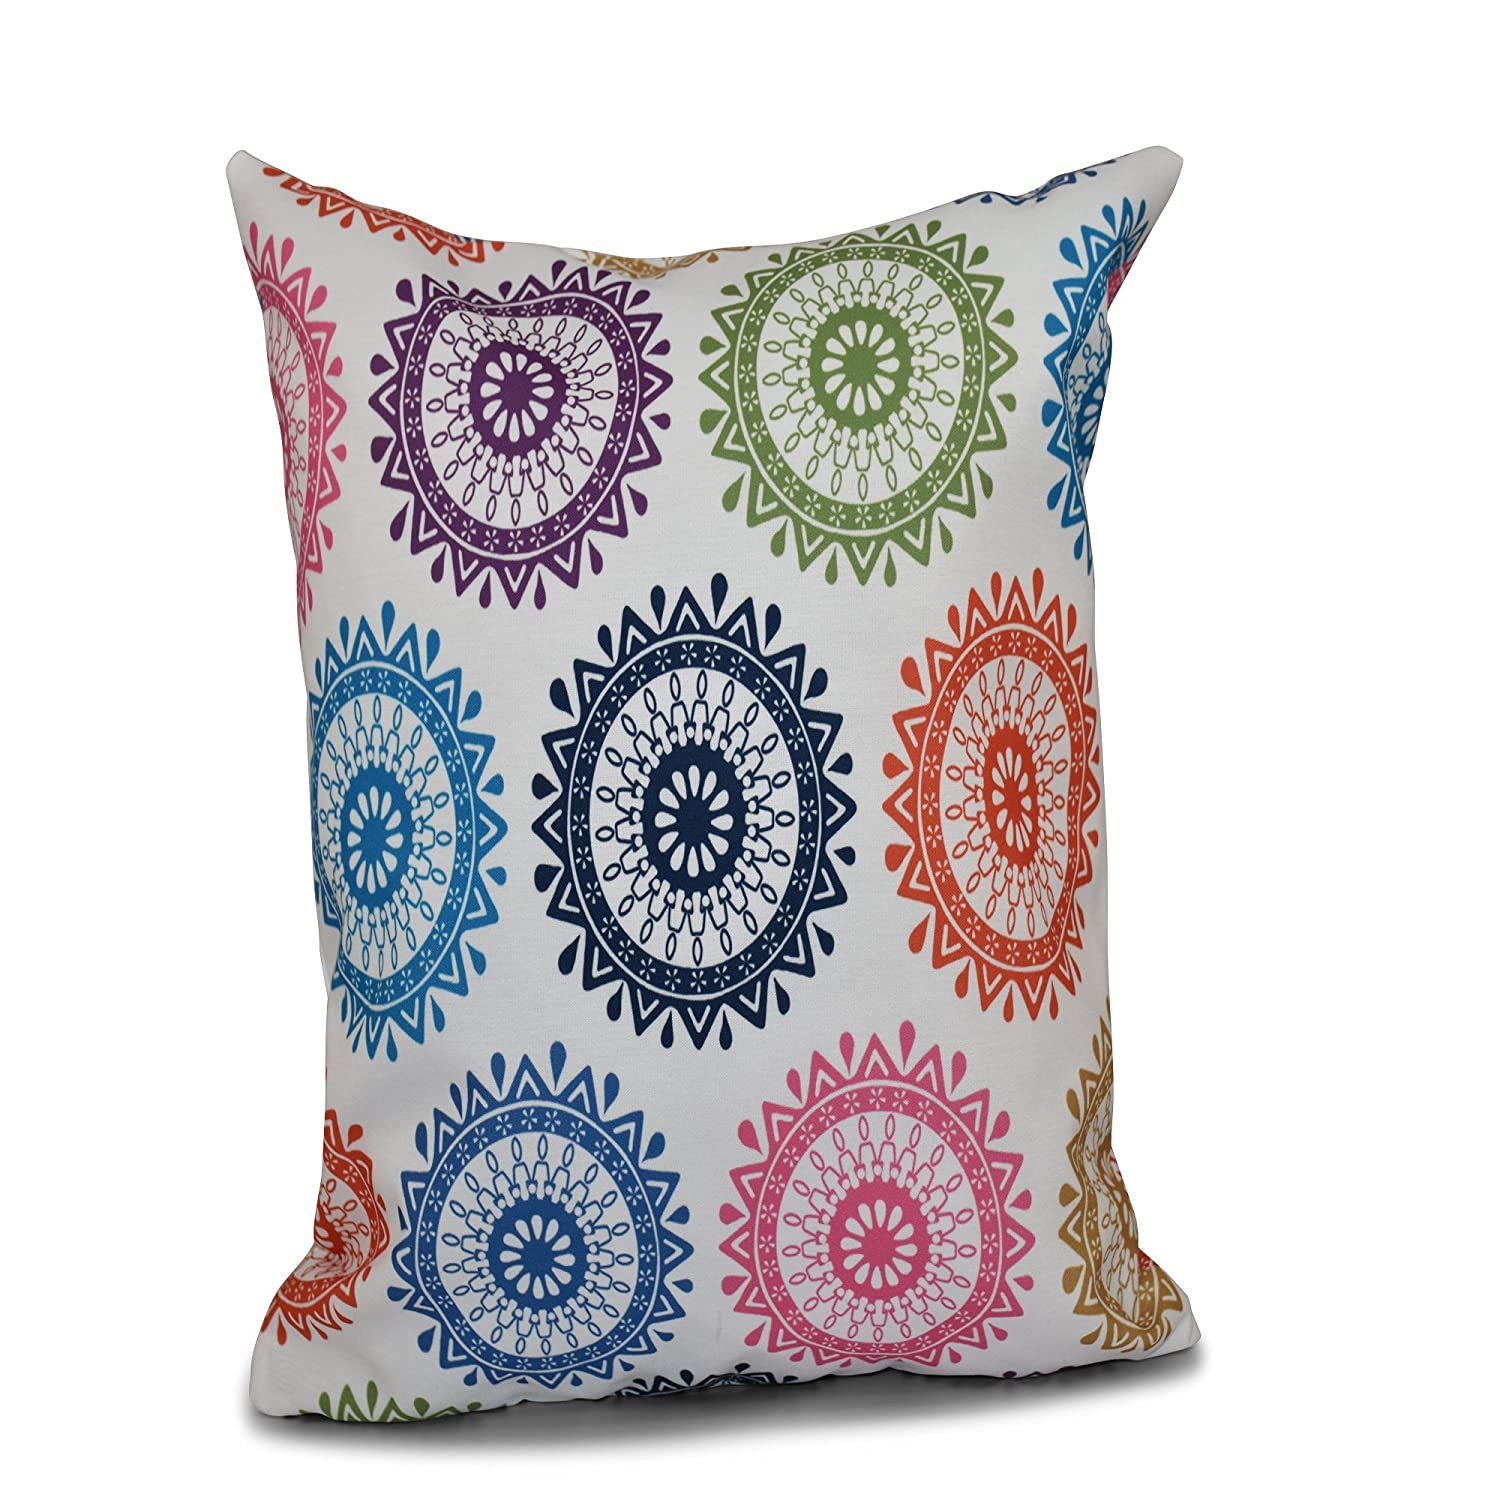 E by design PGN549BL14-18 18 x 18-inch, Groovy, Geometric Print Pillow 18x18 Blue